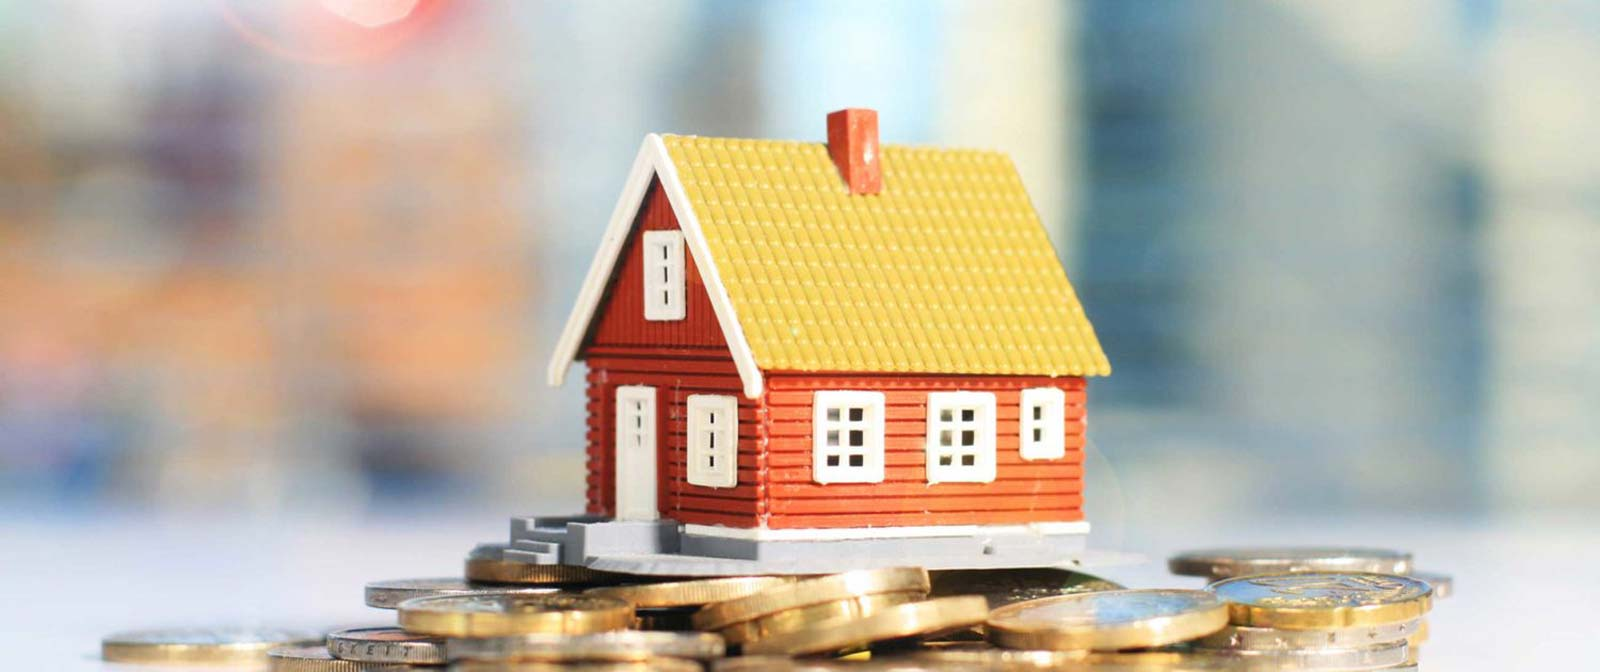 What Is Home Equity And How Does It Affect My Financial Freedom?